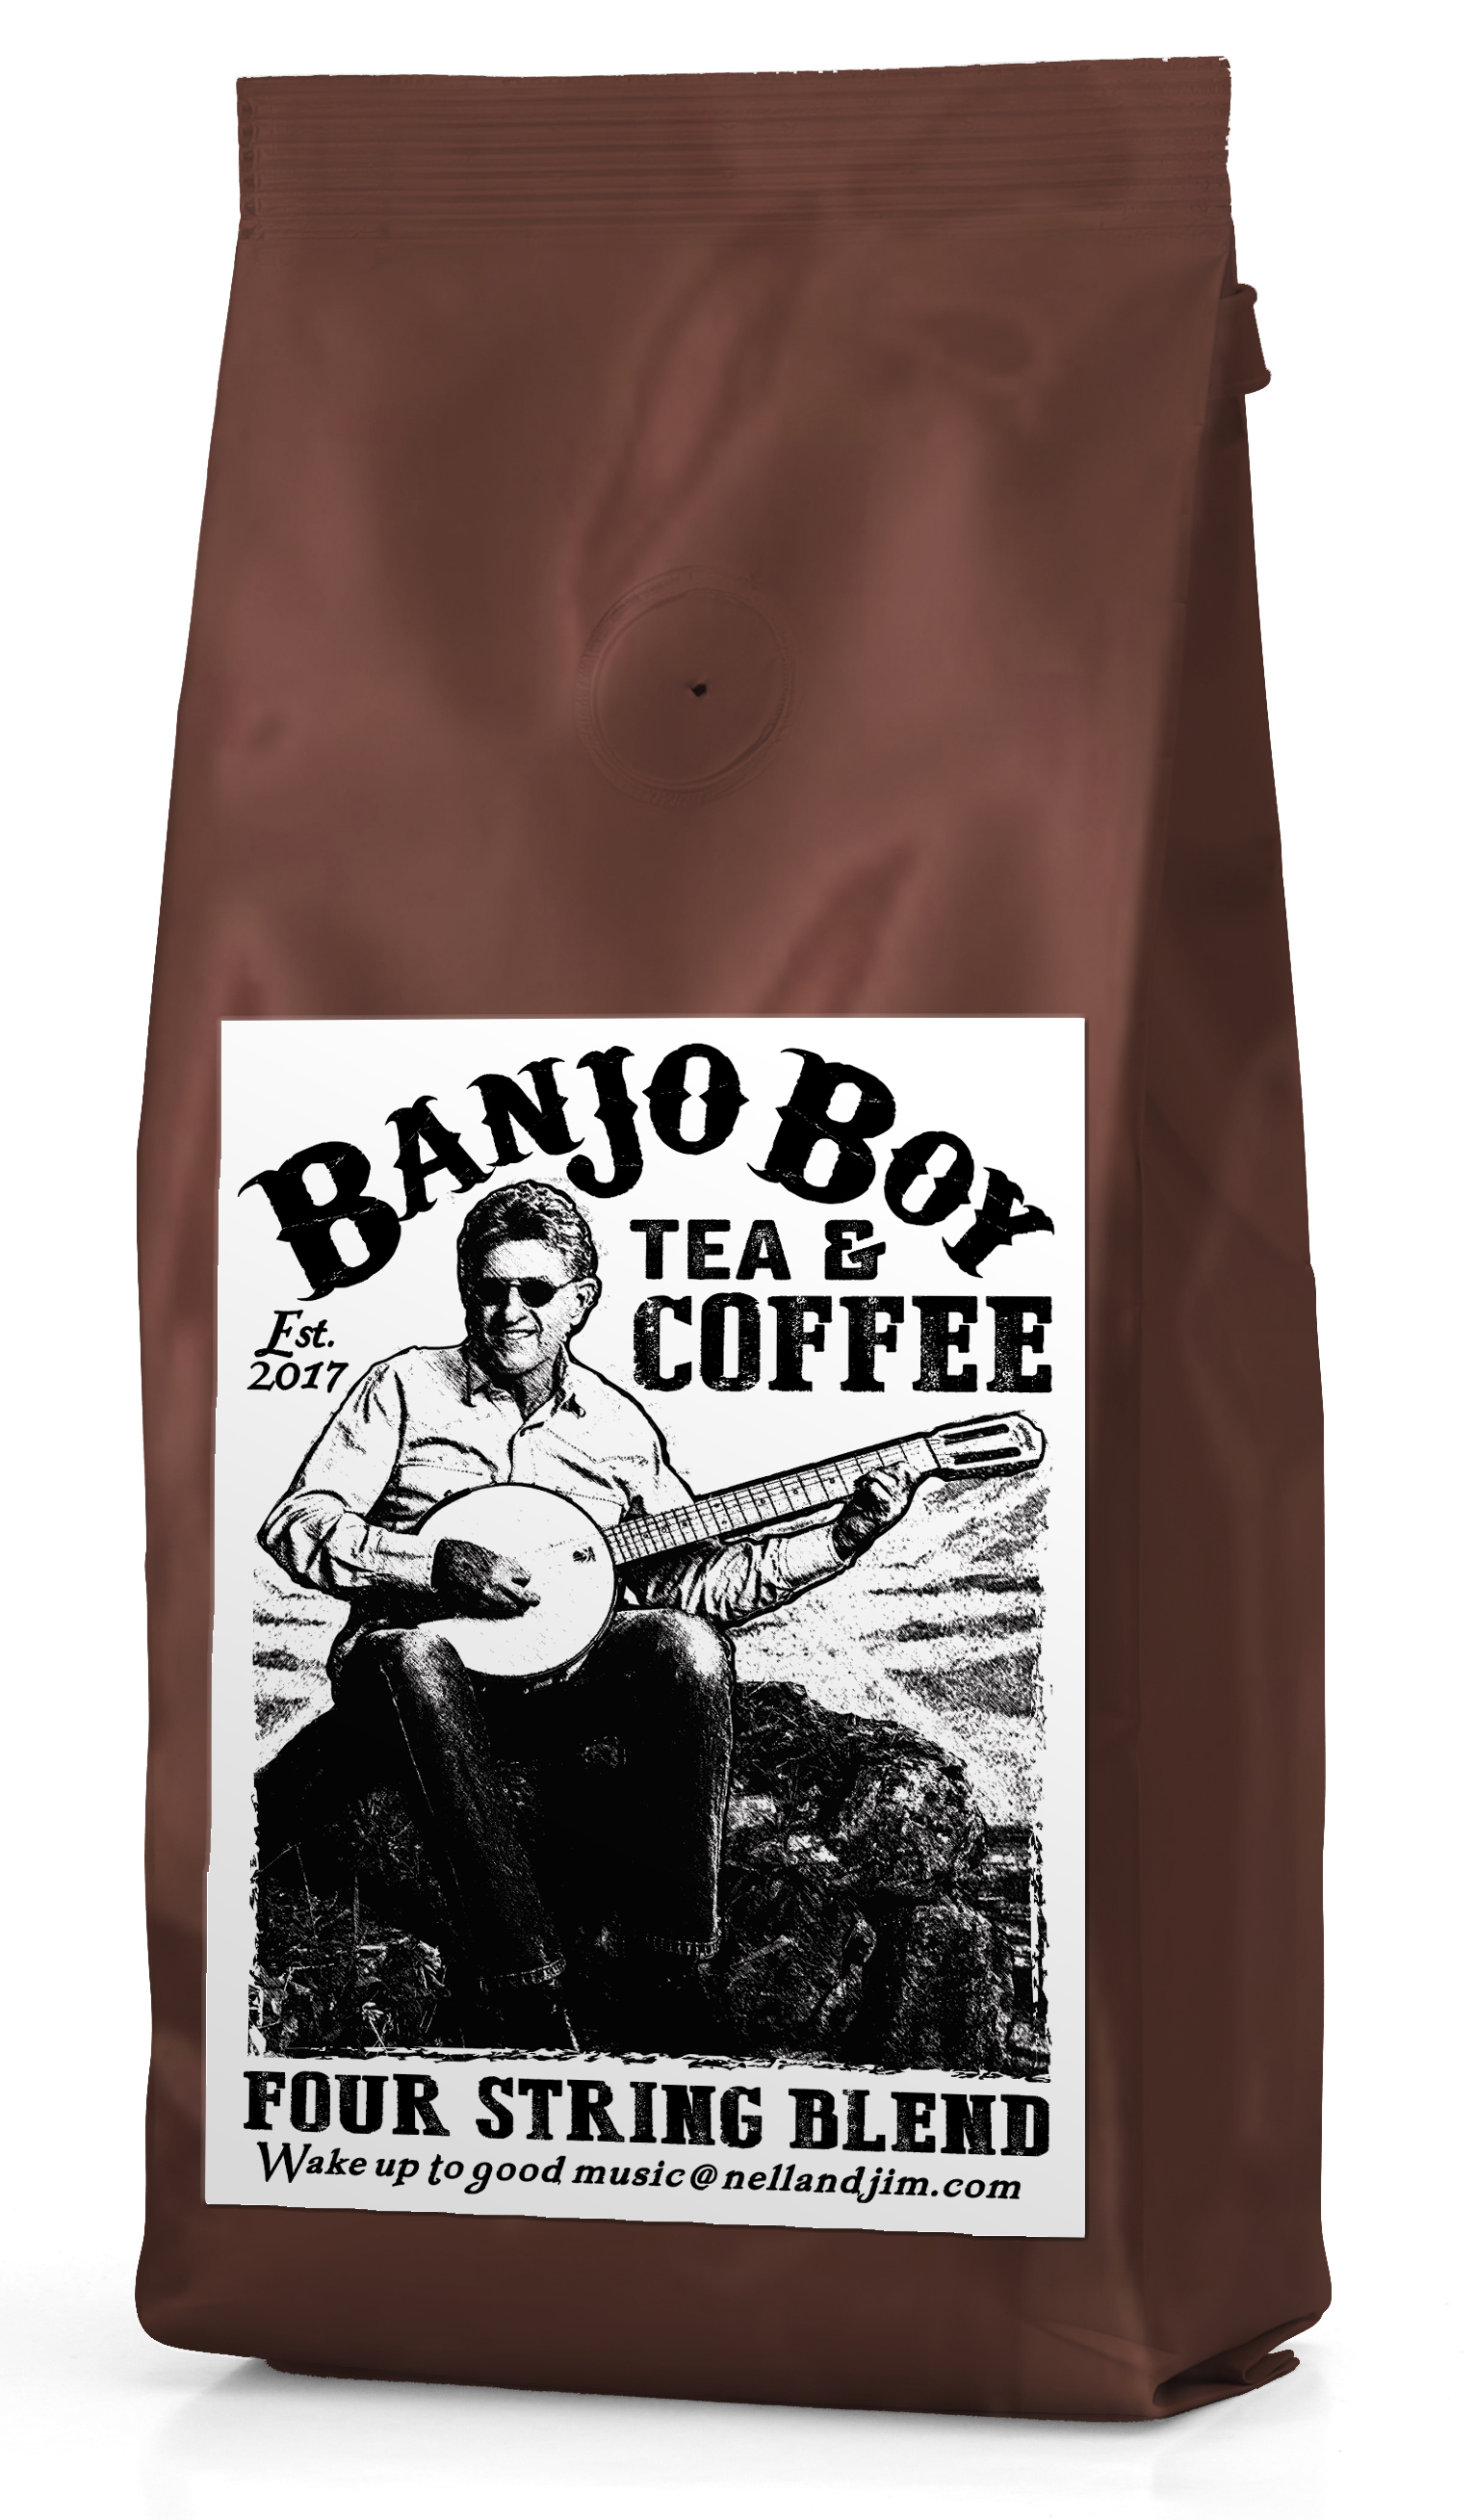 Four String Blend - This medium roast of single origin beans from Africa has uncanny blueberry overtones, it's got the taste to match the tempo and tone for your favorite tune, be it ragtime, swing, folk or Irish.